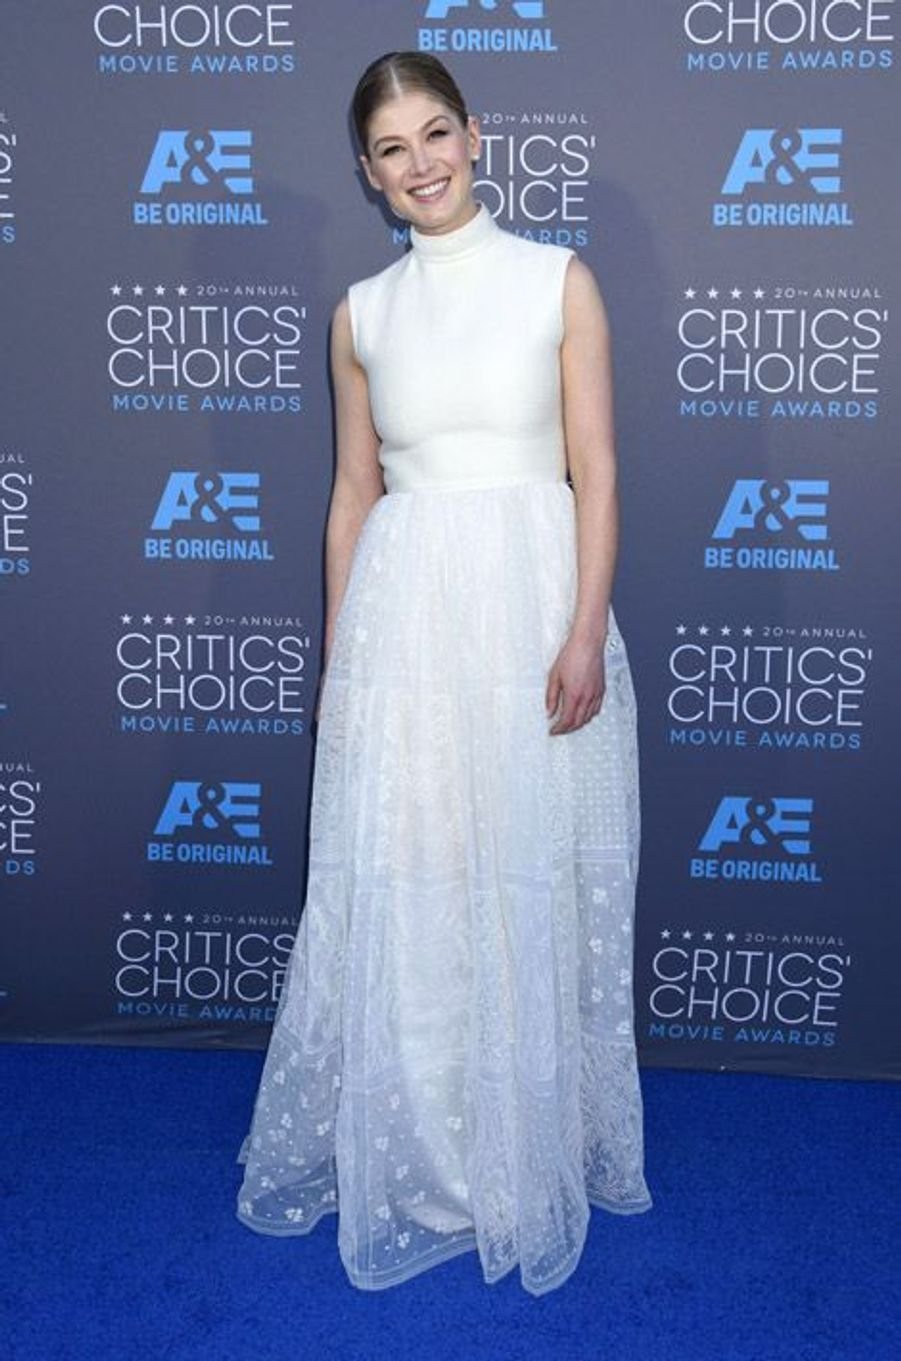 Rosamund Pik en Valentino Couture lors de la cérémonie des Critics Choice Movie Awards à Los Angeles, le 15 janvier 2015